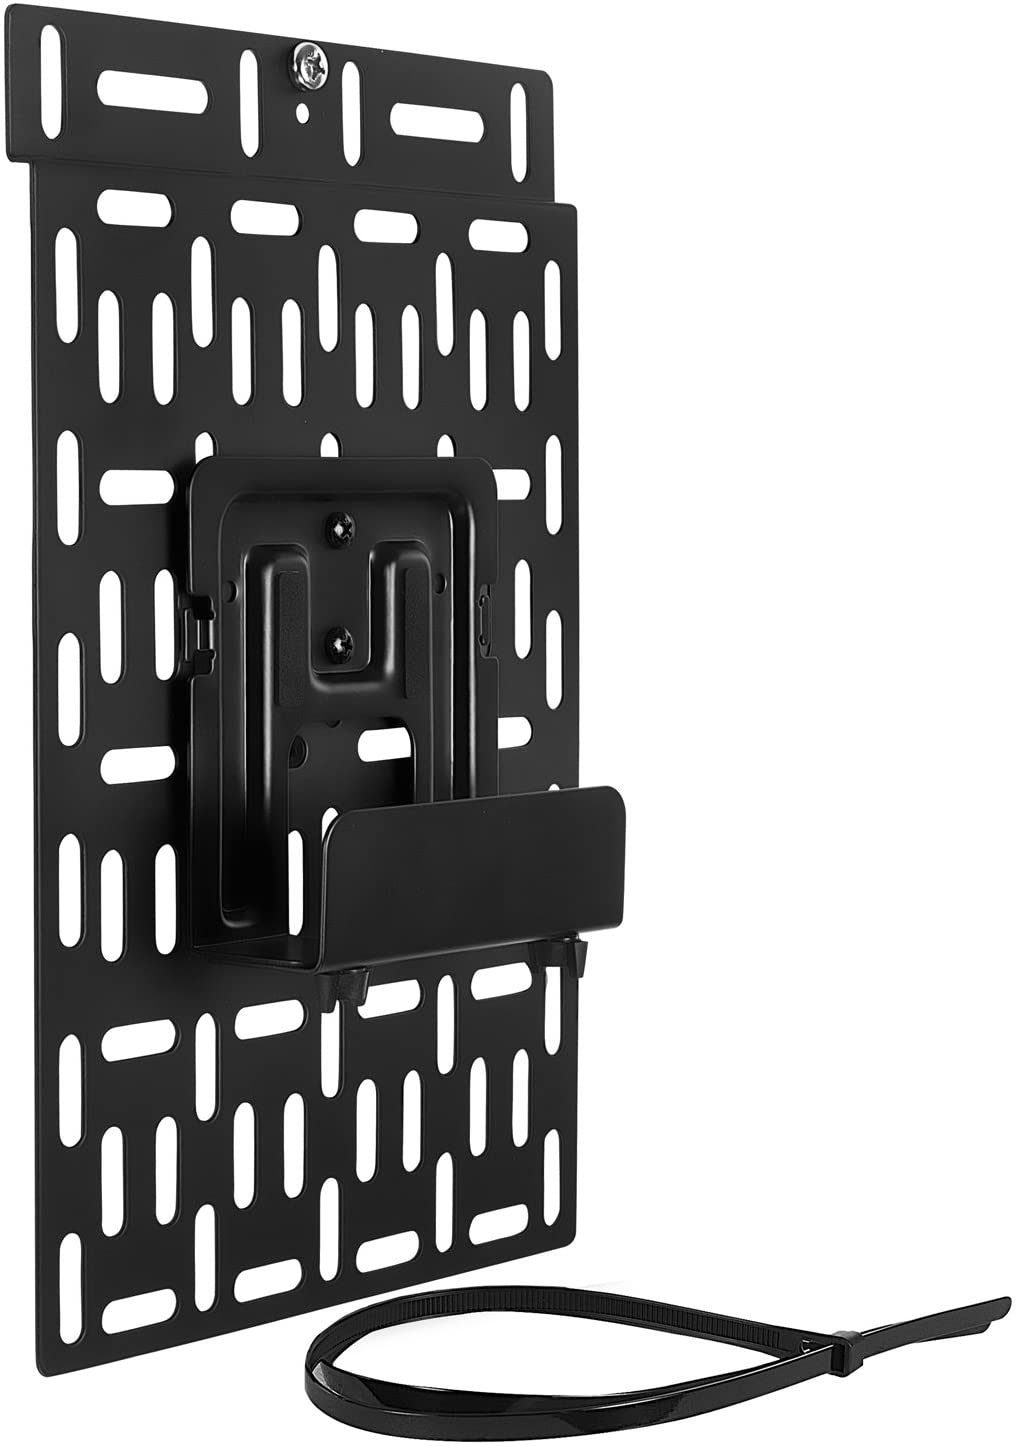 Mount-It! Cable Box Mount Behind TV | Adjustable Universal Mounting Bracket for Streaming Devices, Router, Modem, DVD | Wall and Behind TV Compatible, Steel